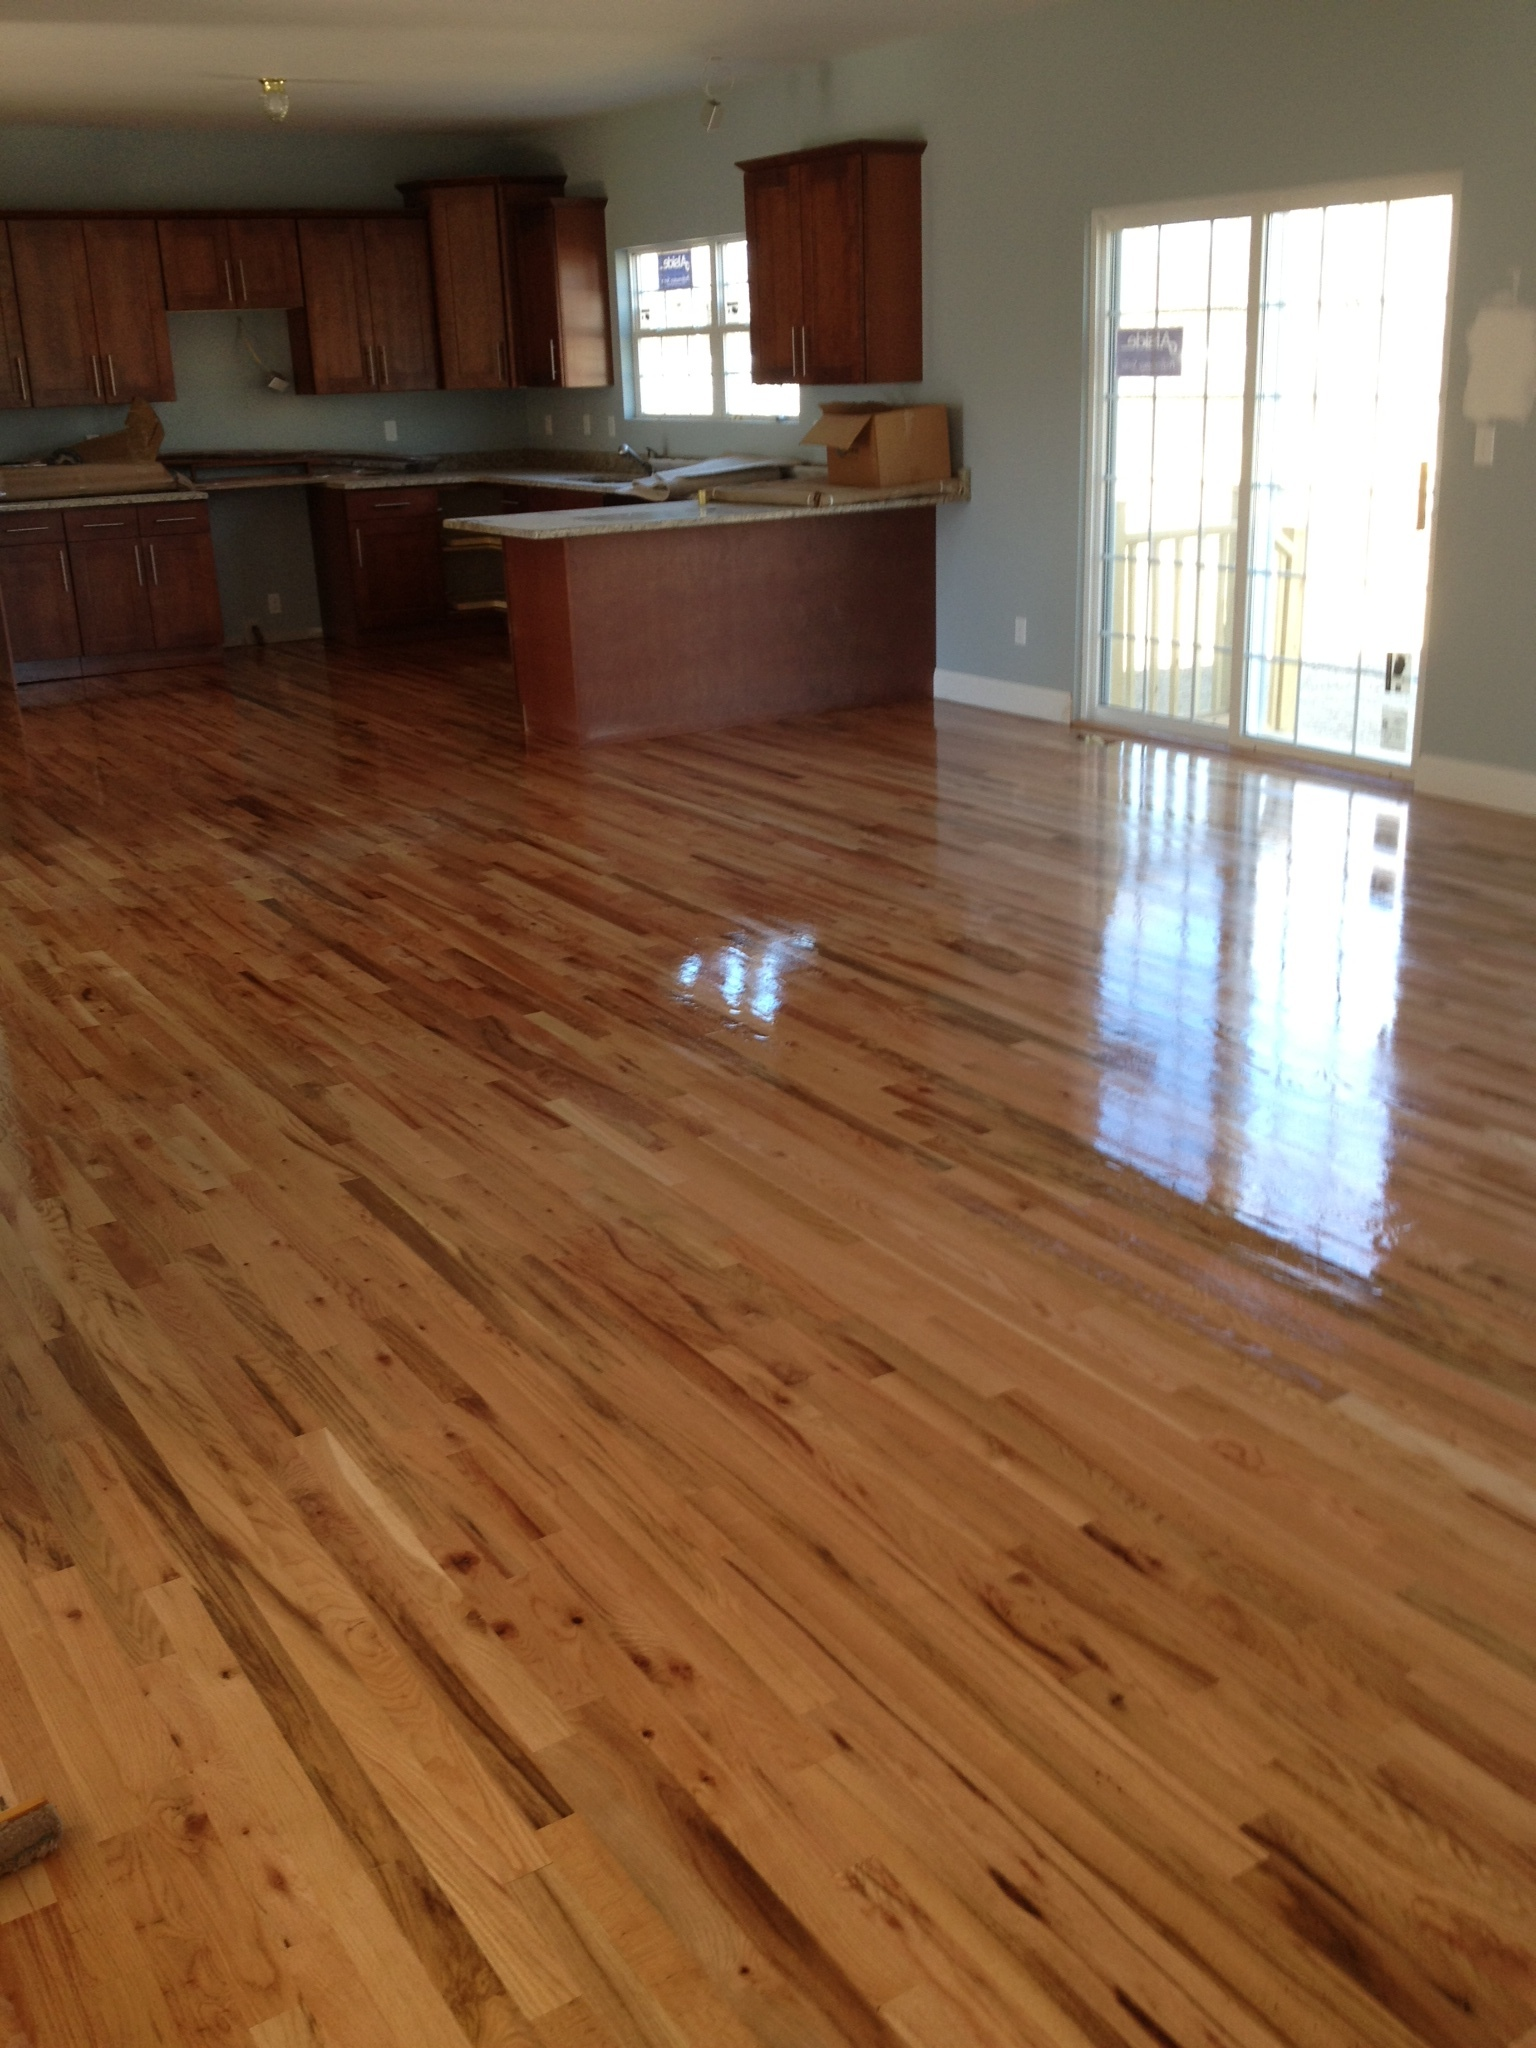 New Water Stained Hardwood Floors Amp Db43 Roccommunity